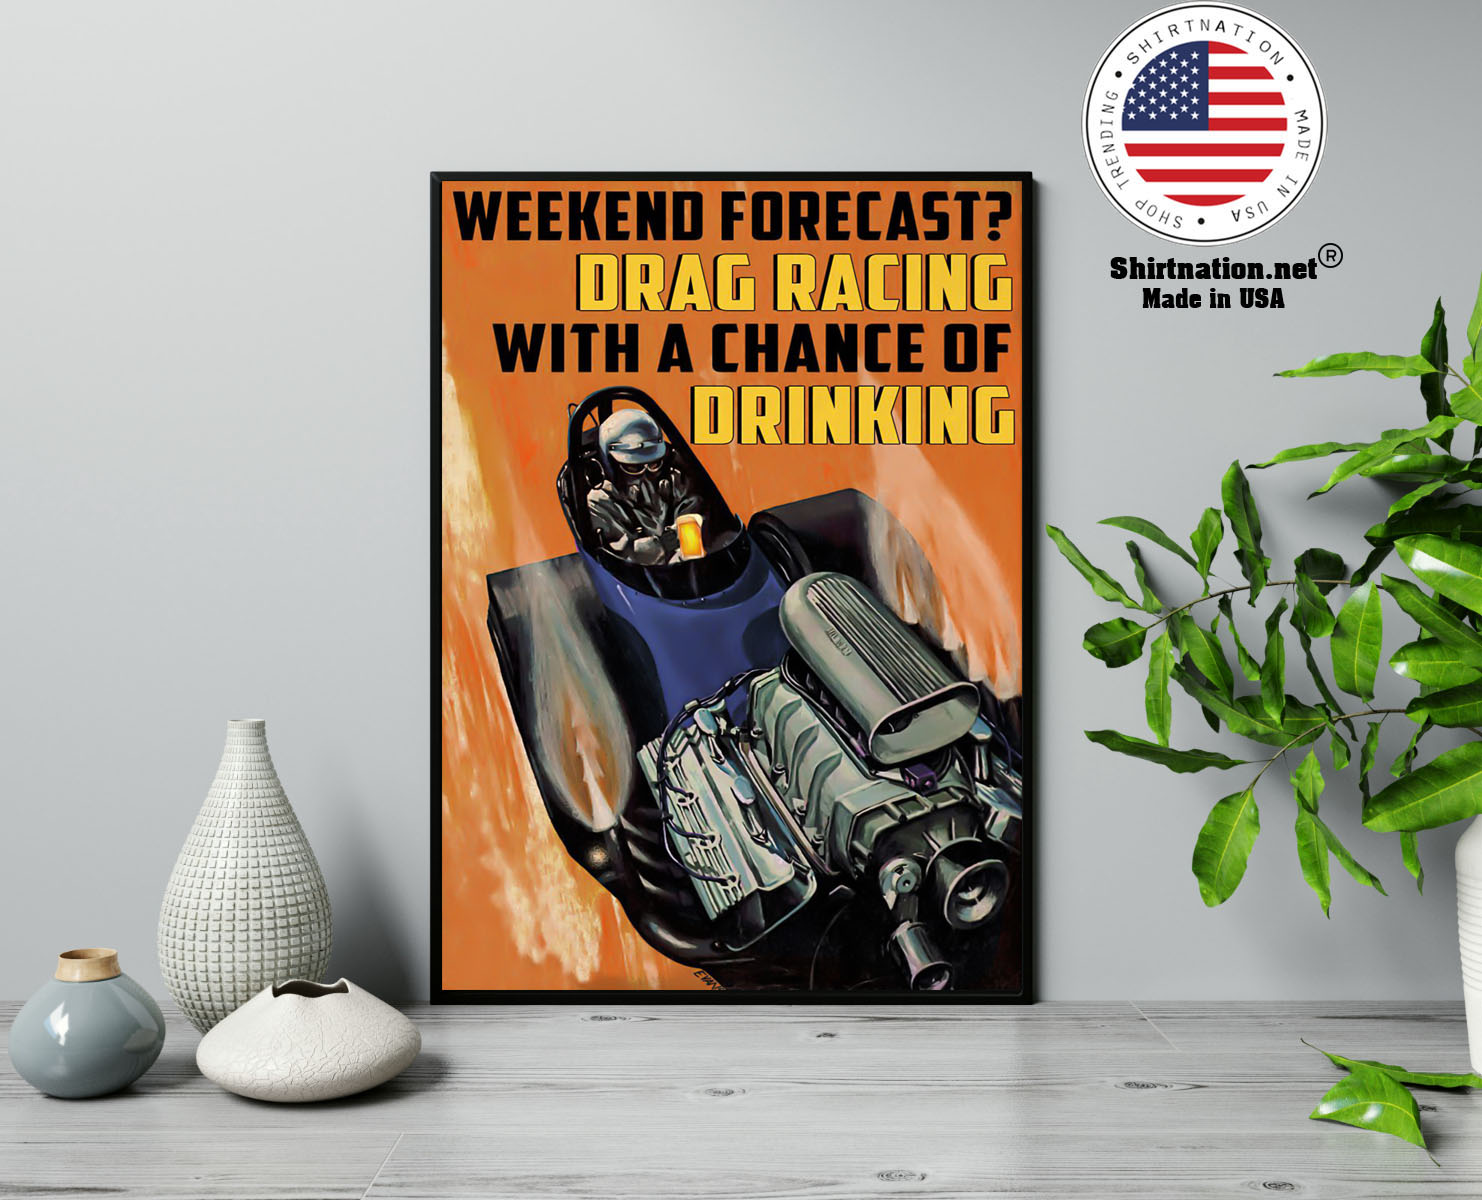 Weekend forecast drag racing with a chance of drinking poster 13